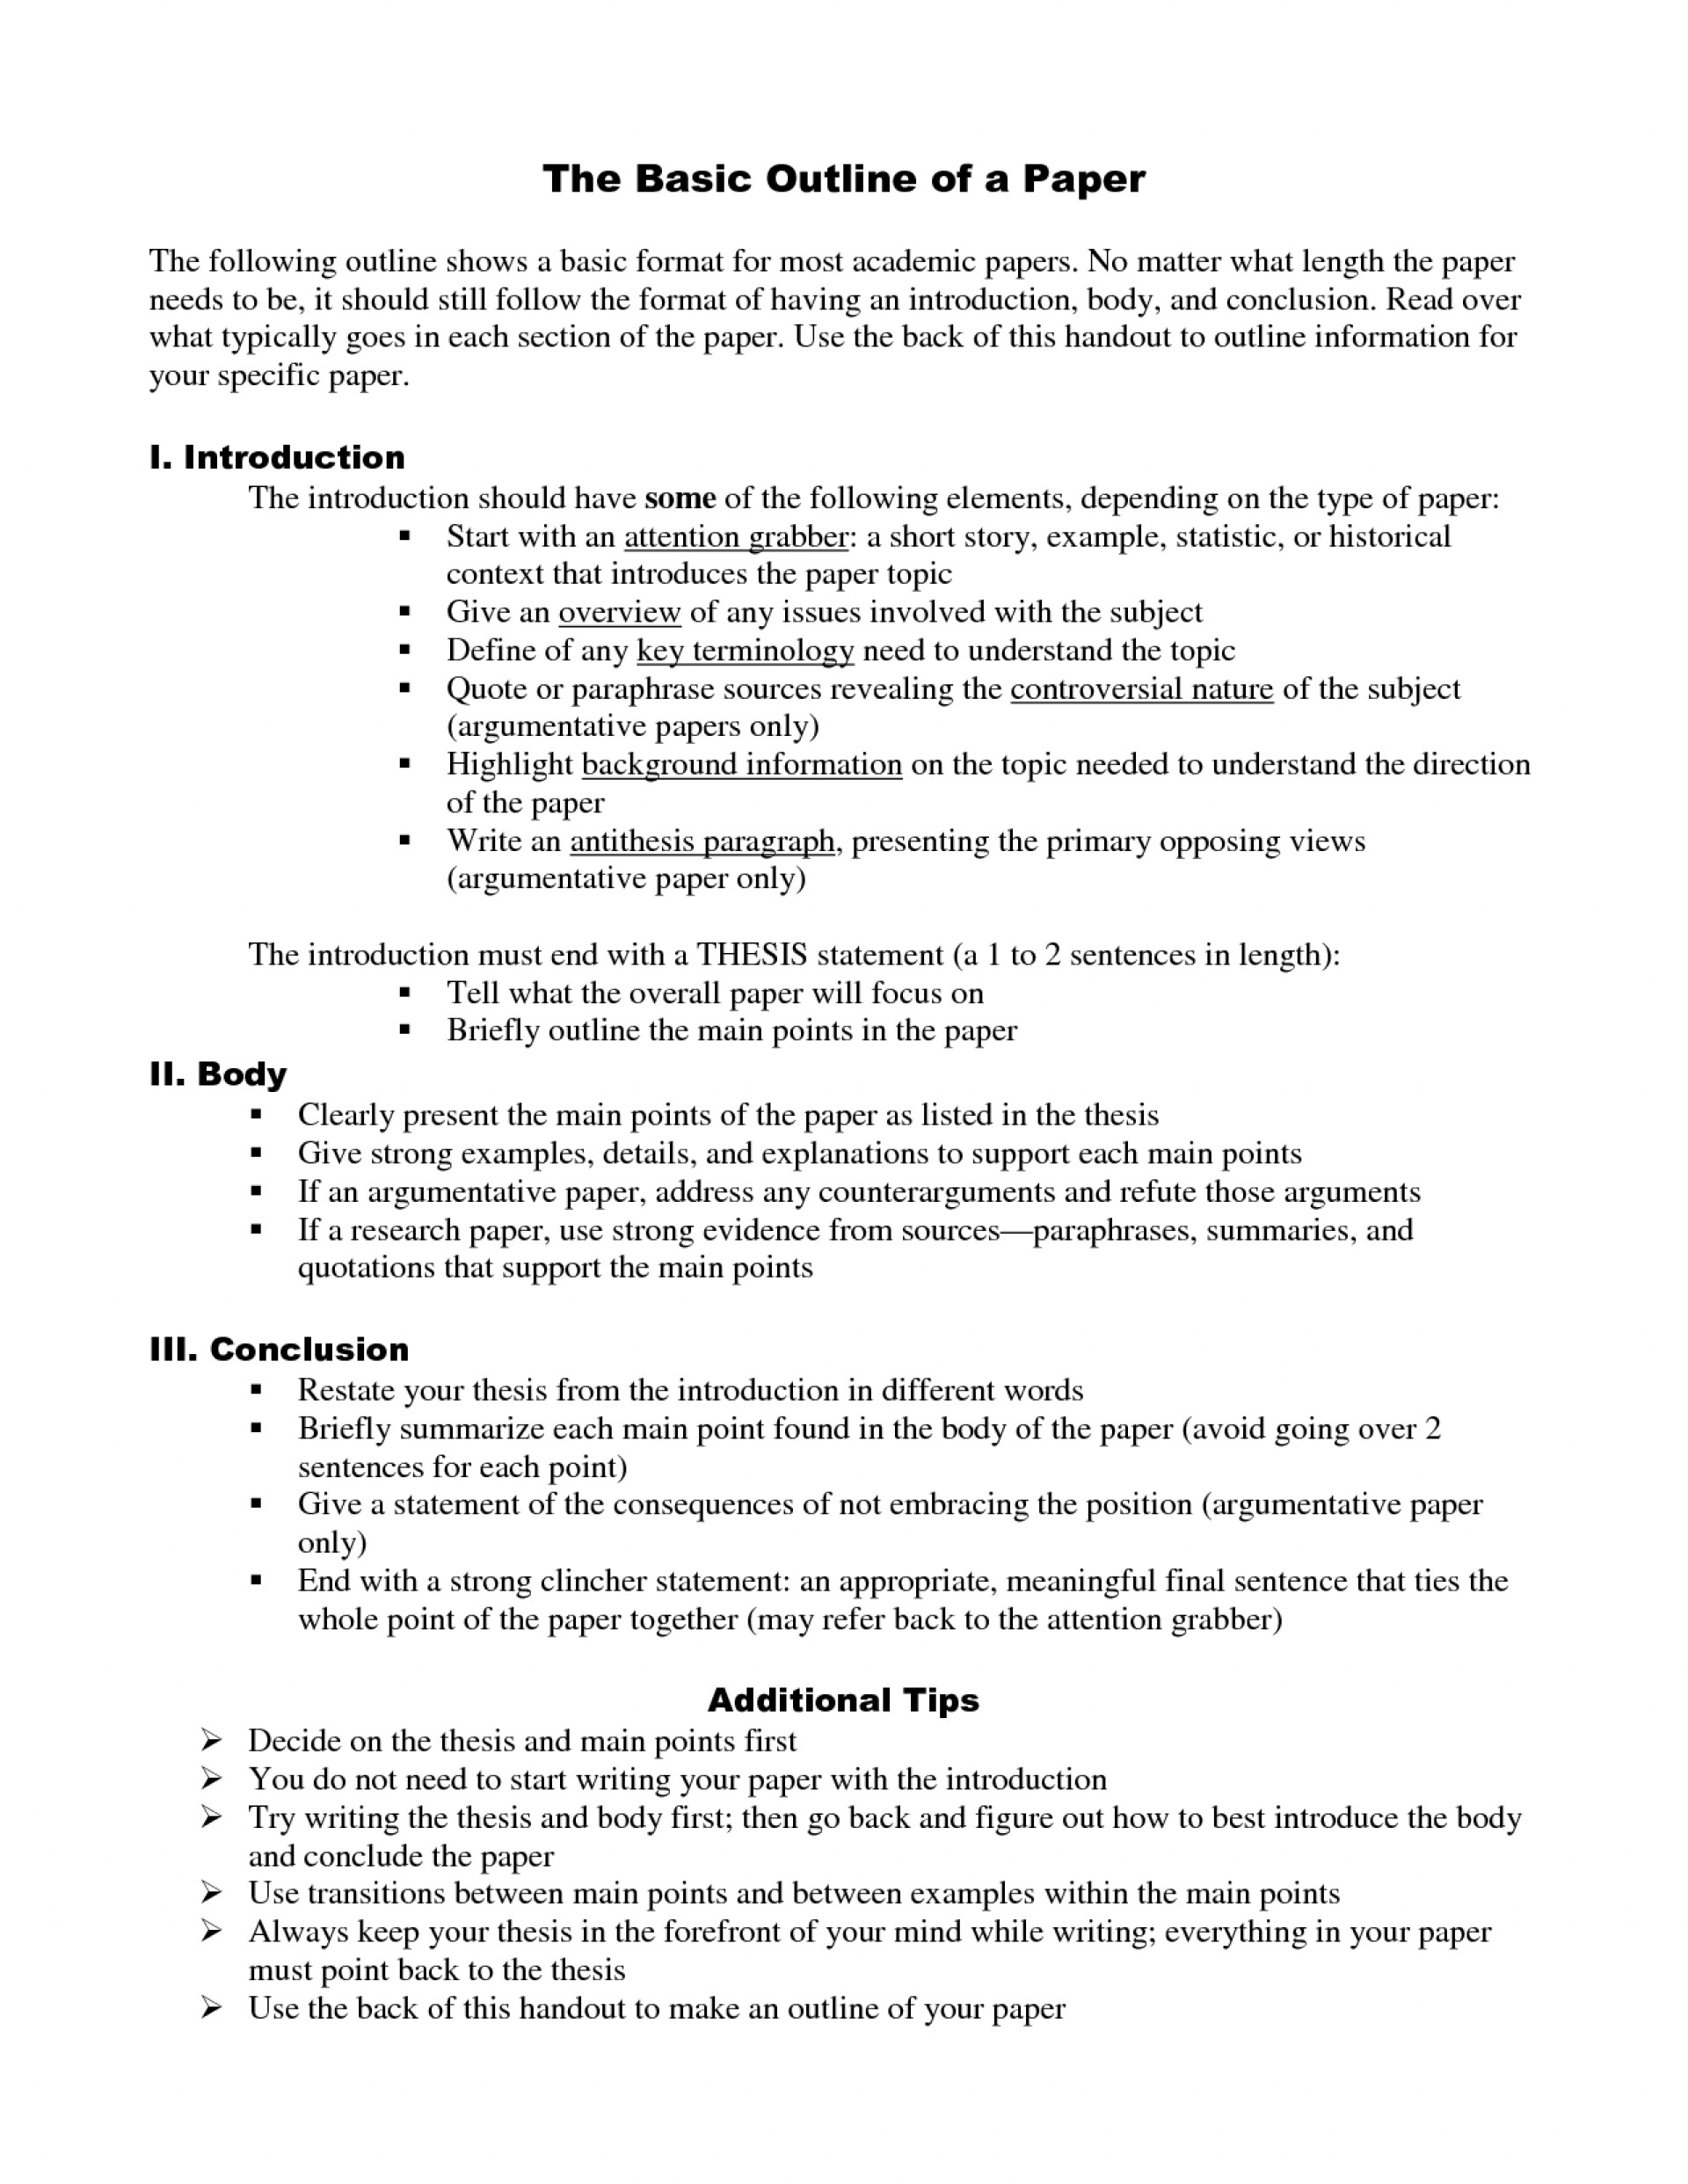 004 Essay Example How To Write Unbelievable A 5 Paragraph In Mla Format 30 Minutes 1920